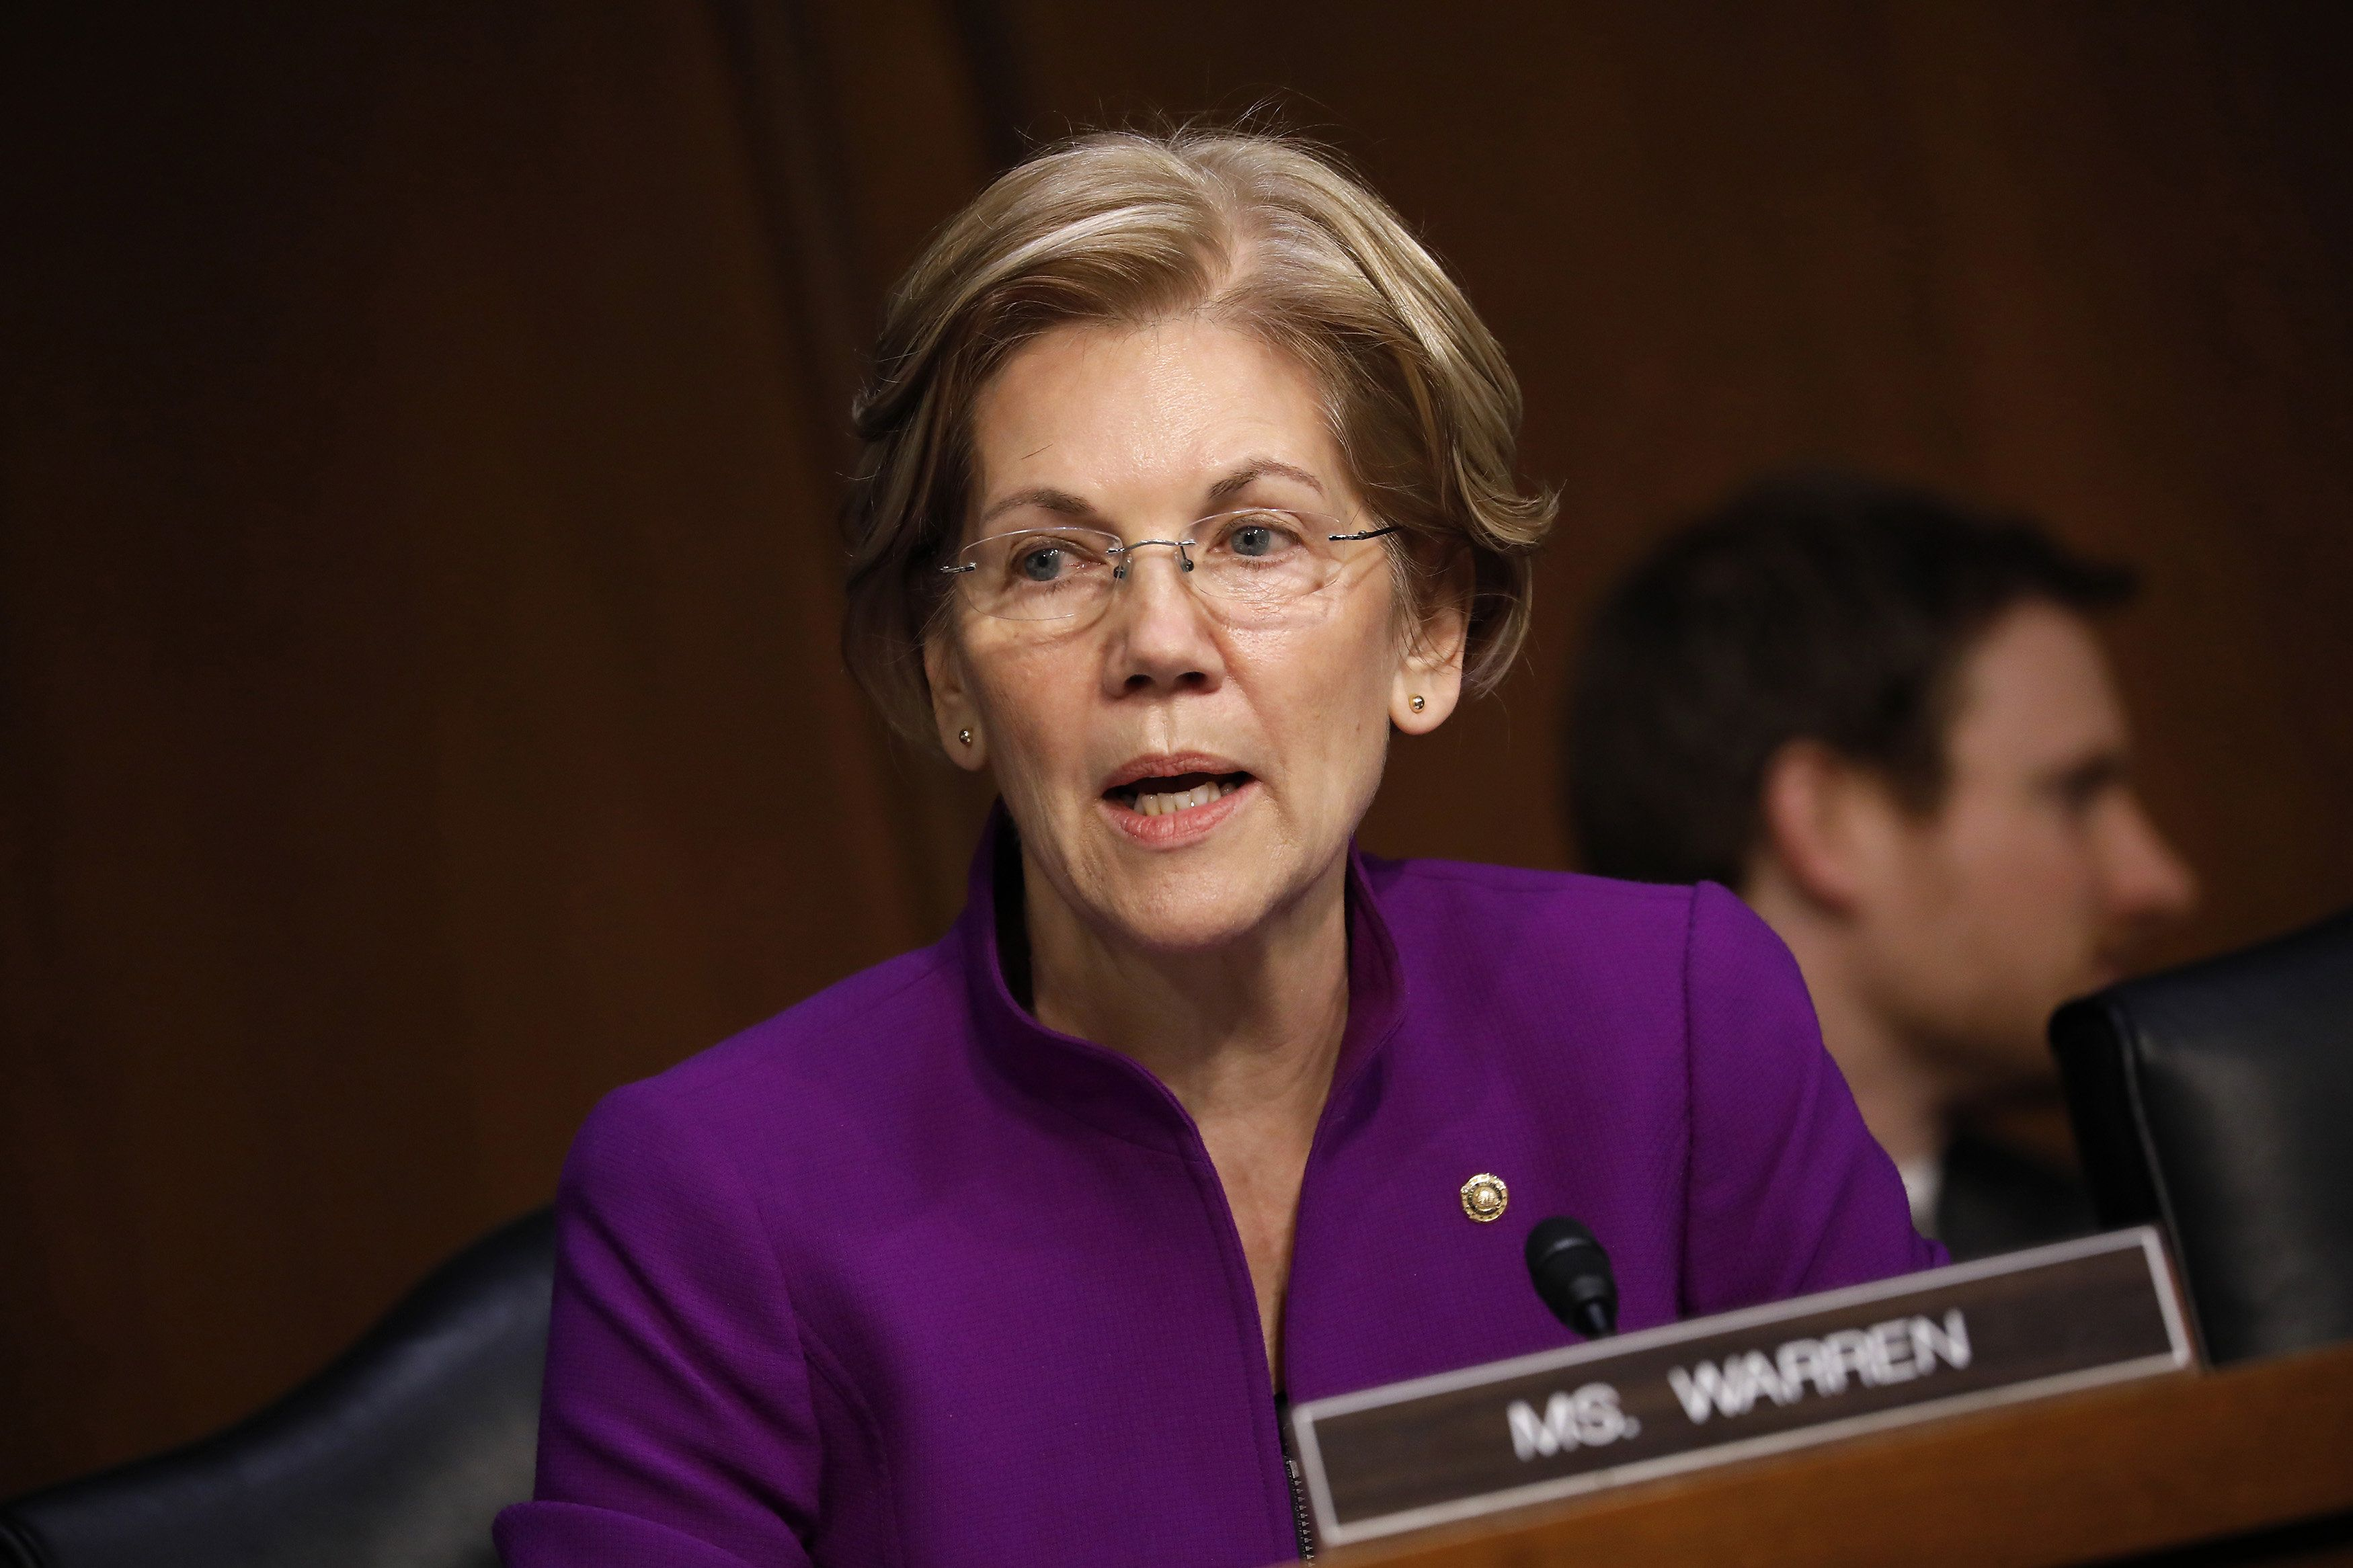 Sen. Elizabeth Warren has a three-part plan to rein in insurance companies.